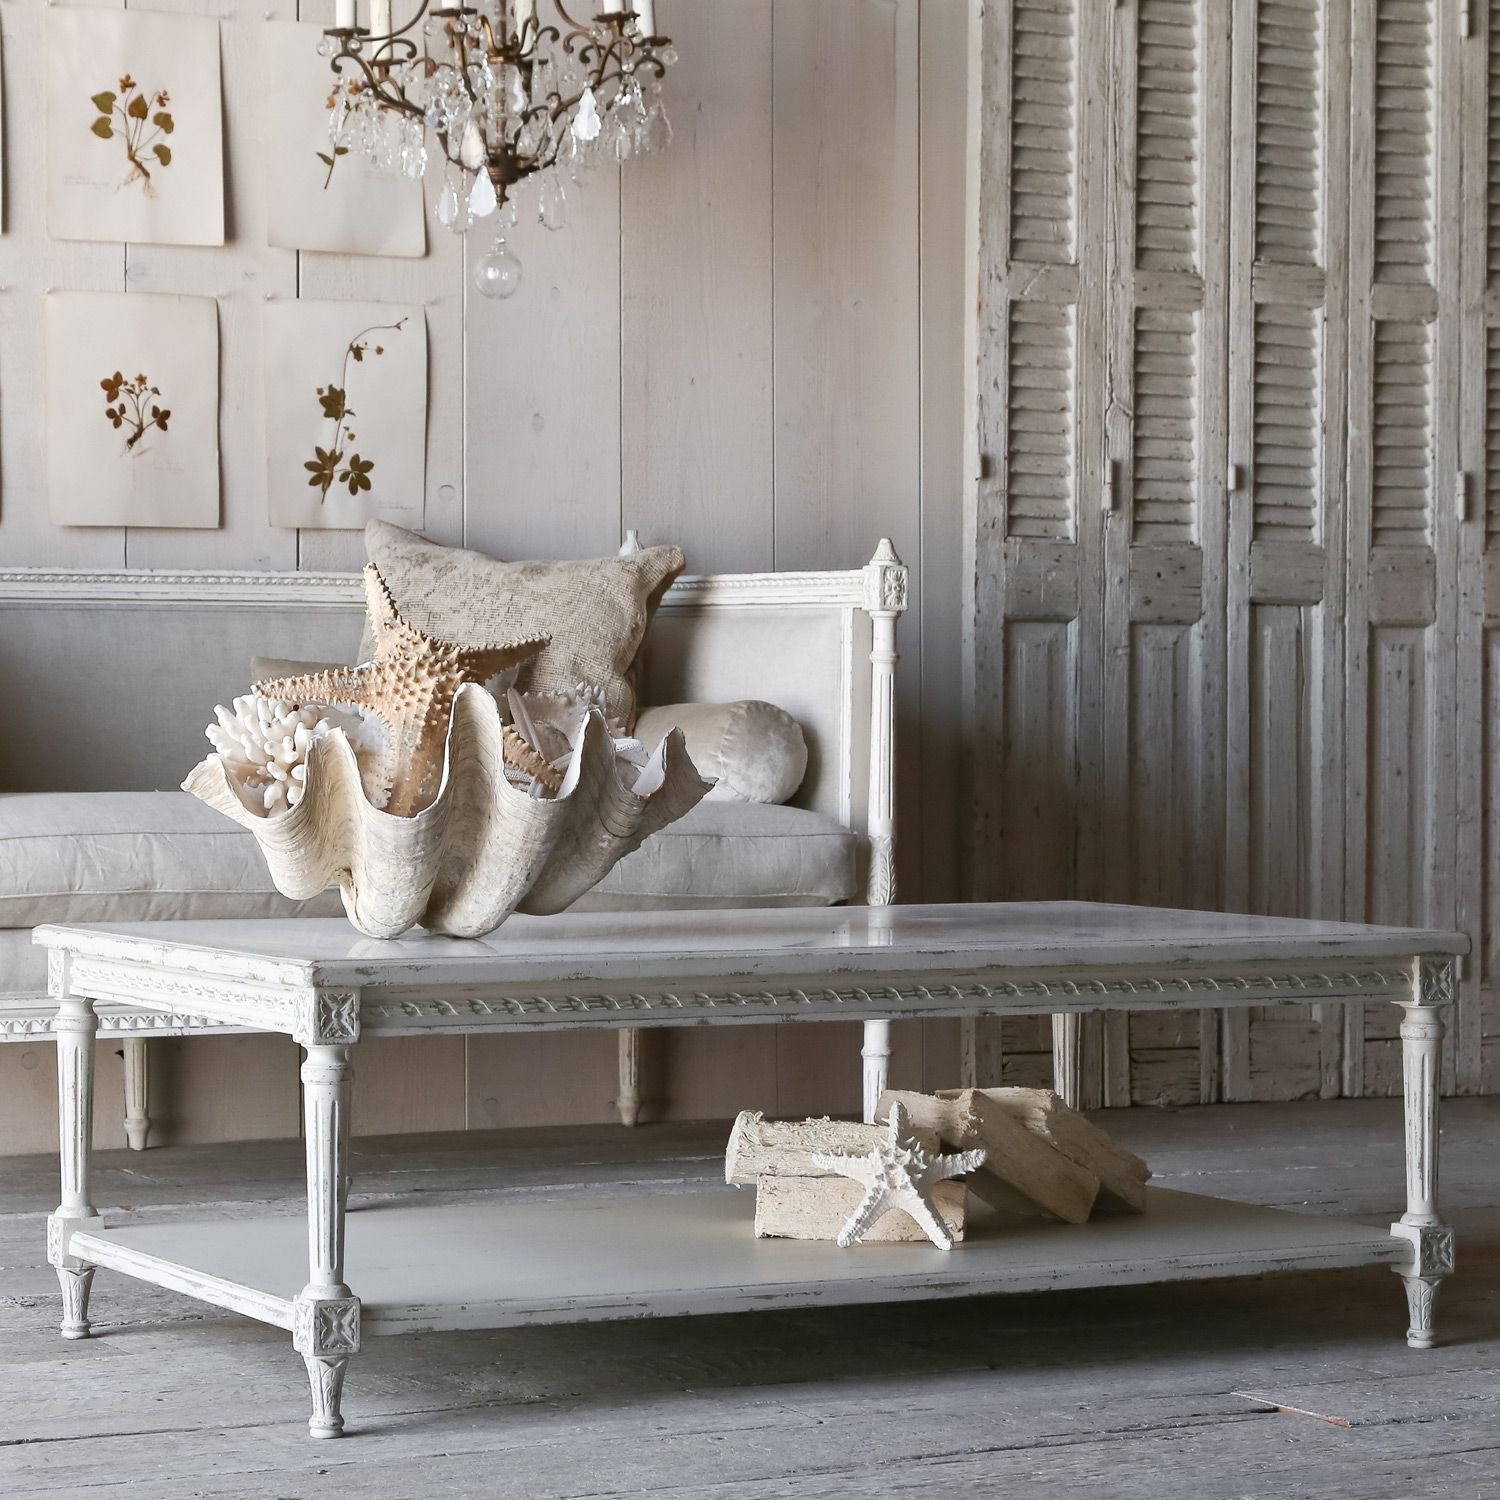 Eloquence Le Courte Grande Oyster Coffee Table @LaylaGrayce